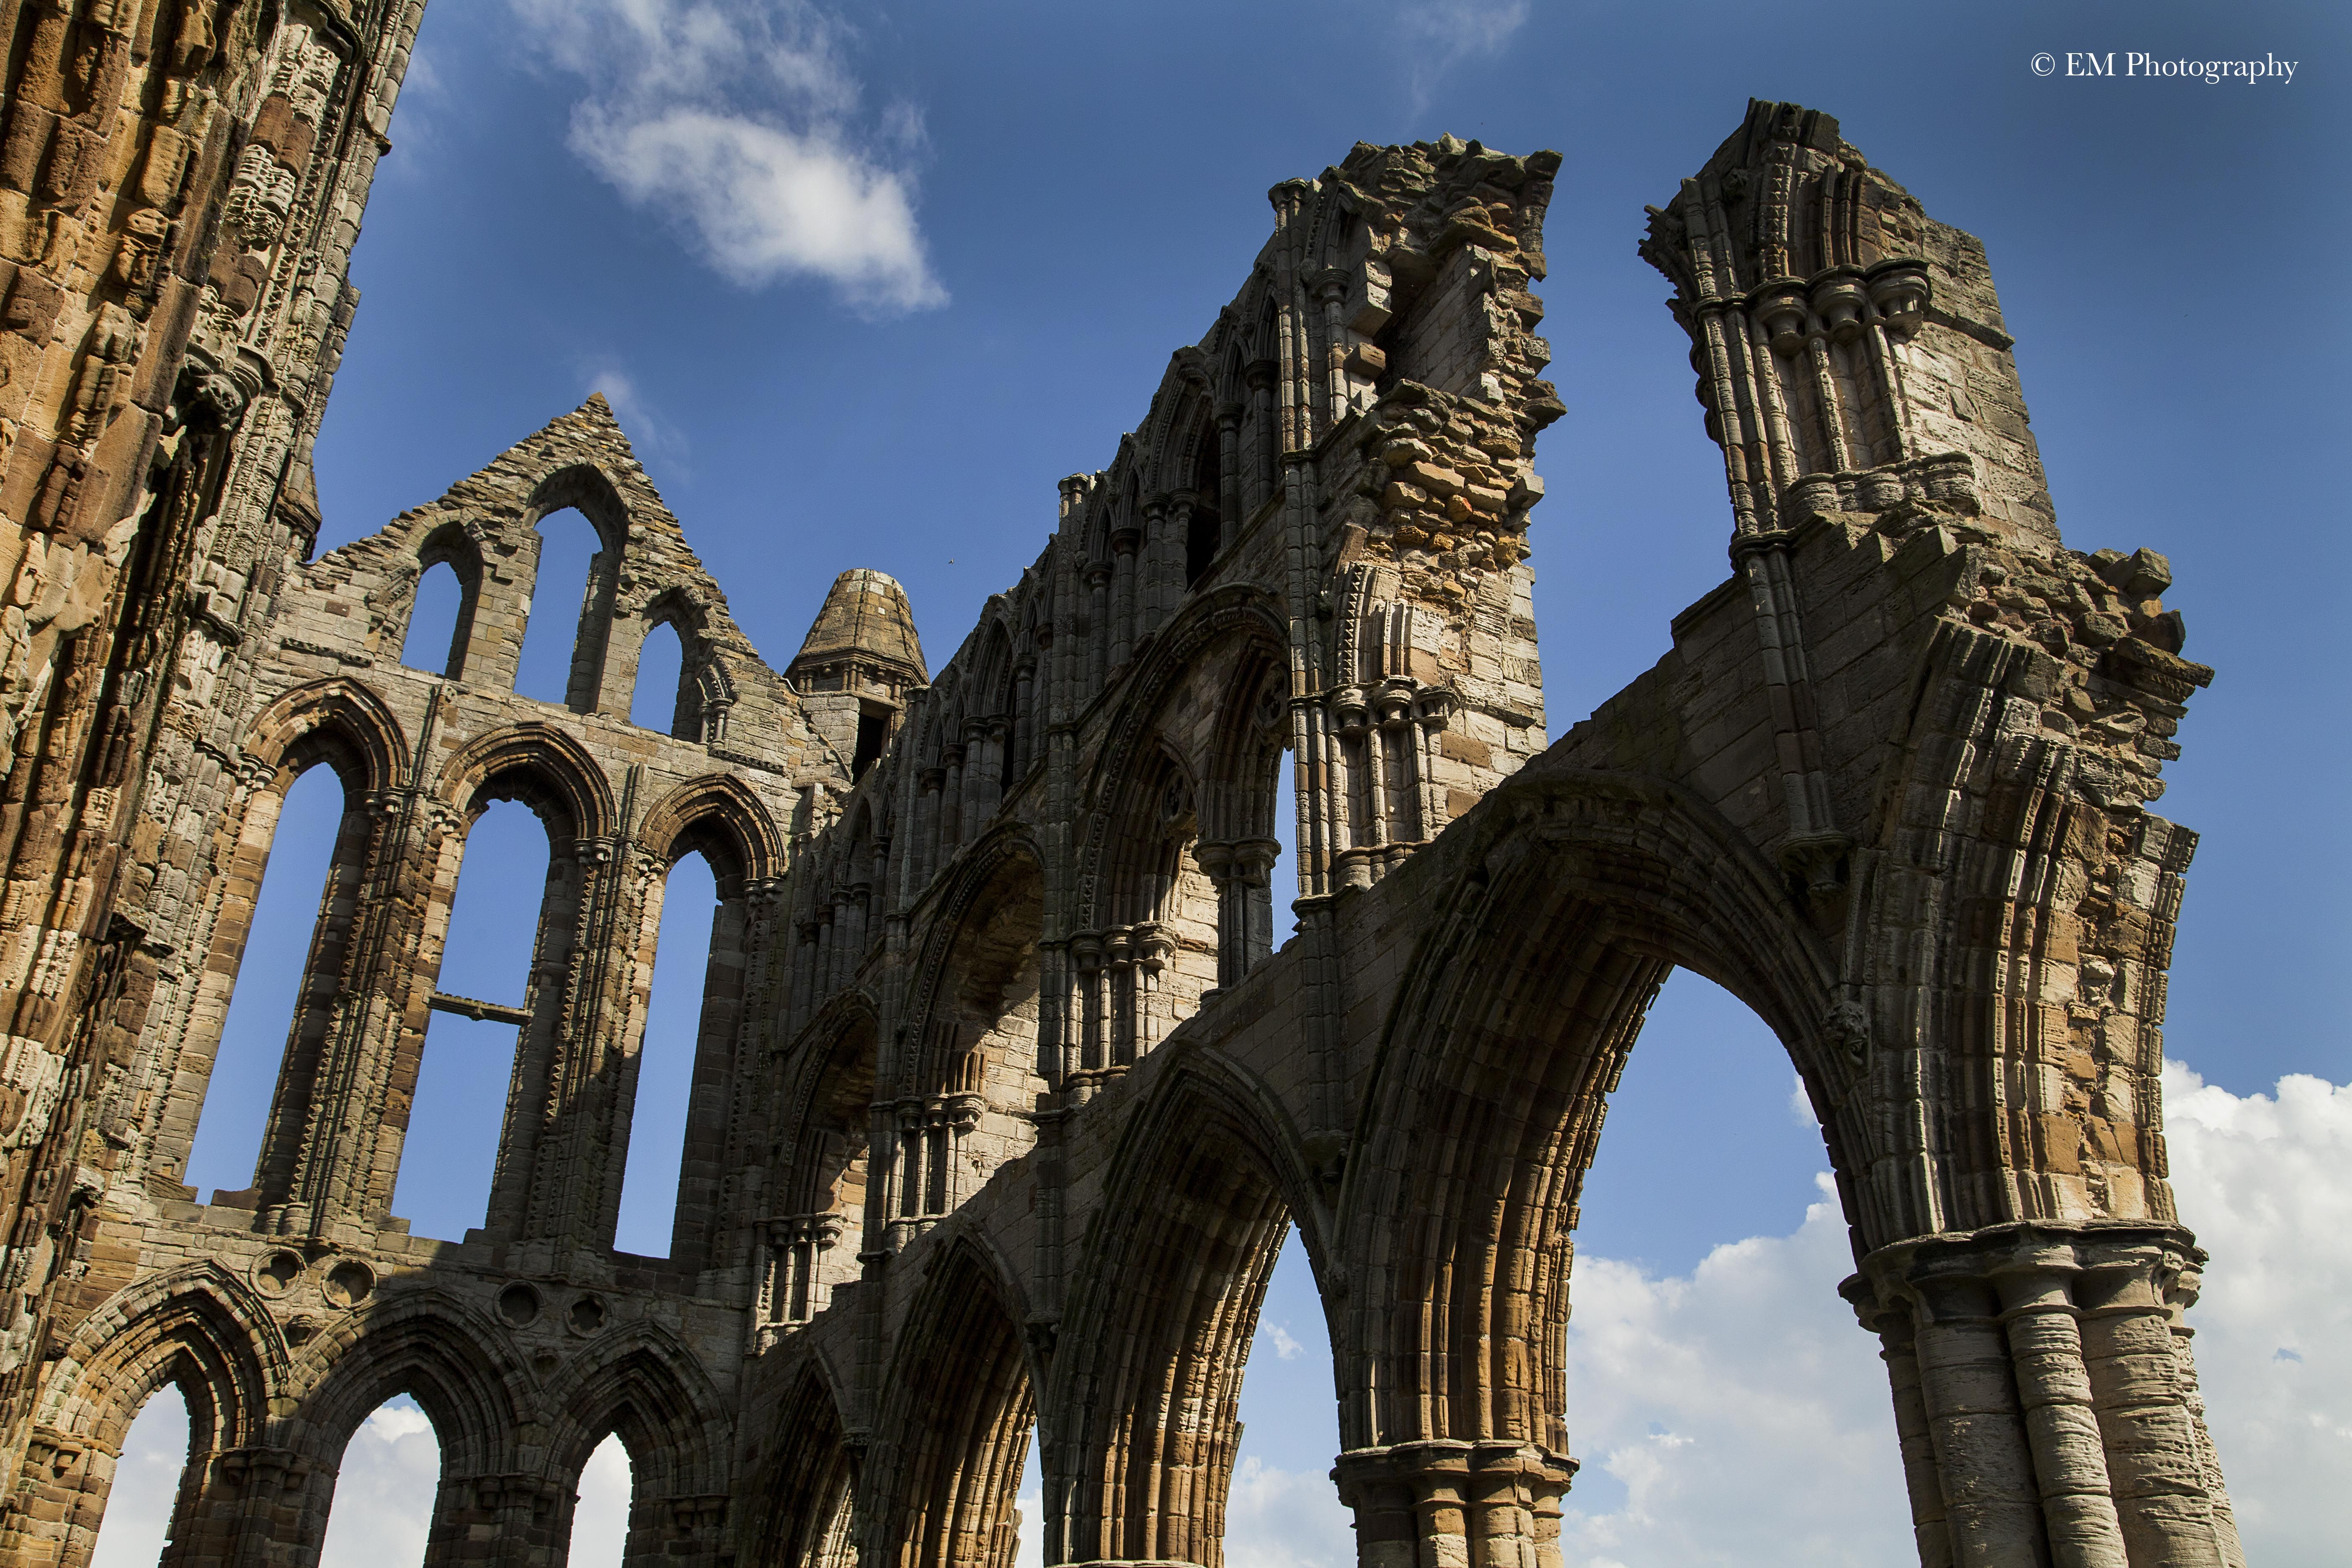 Architecture. Whitby Abbey, Yorkshire.